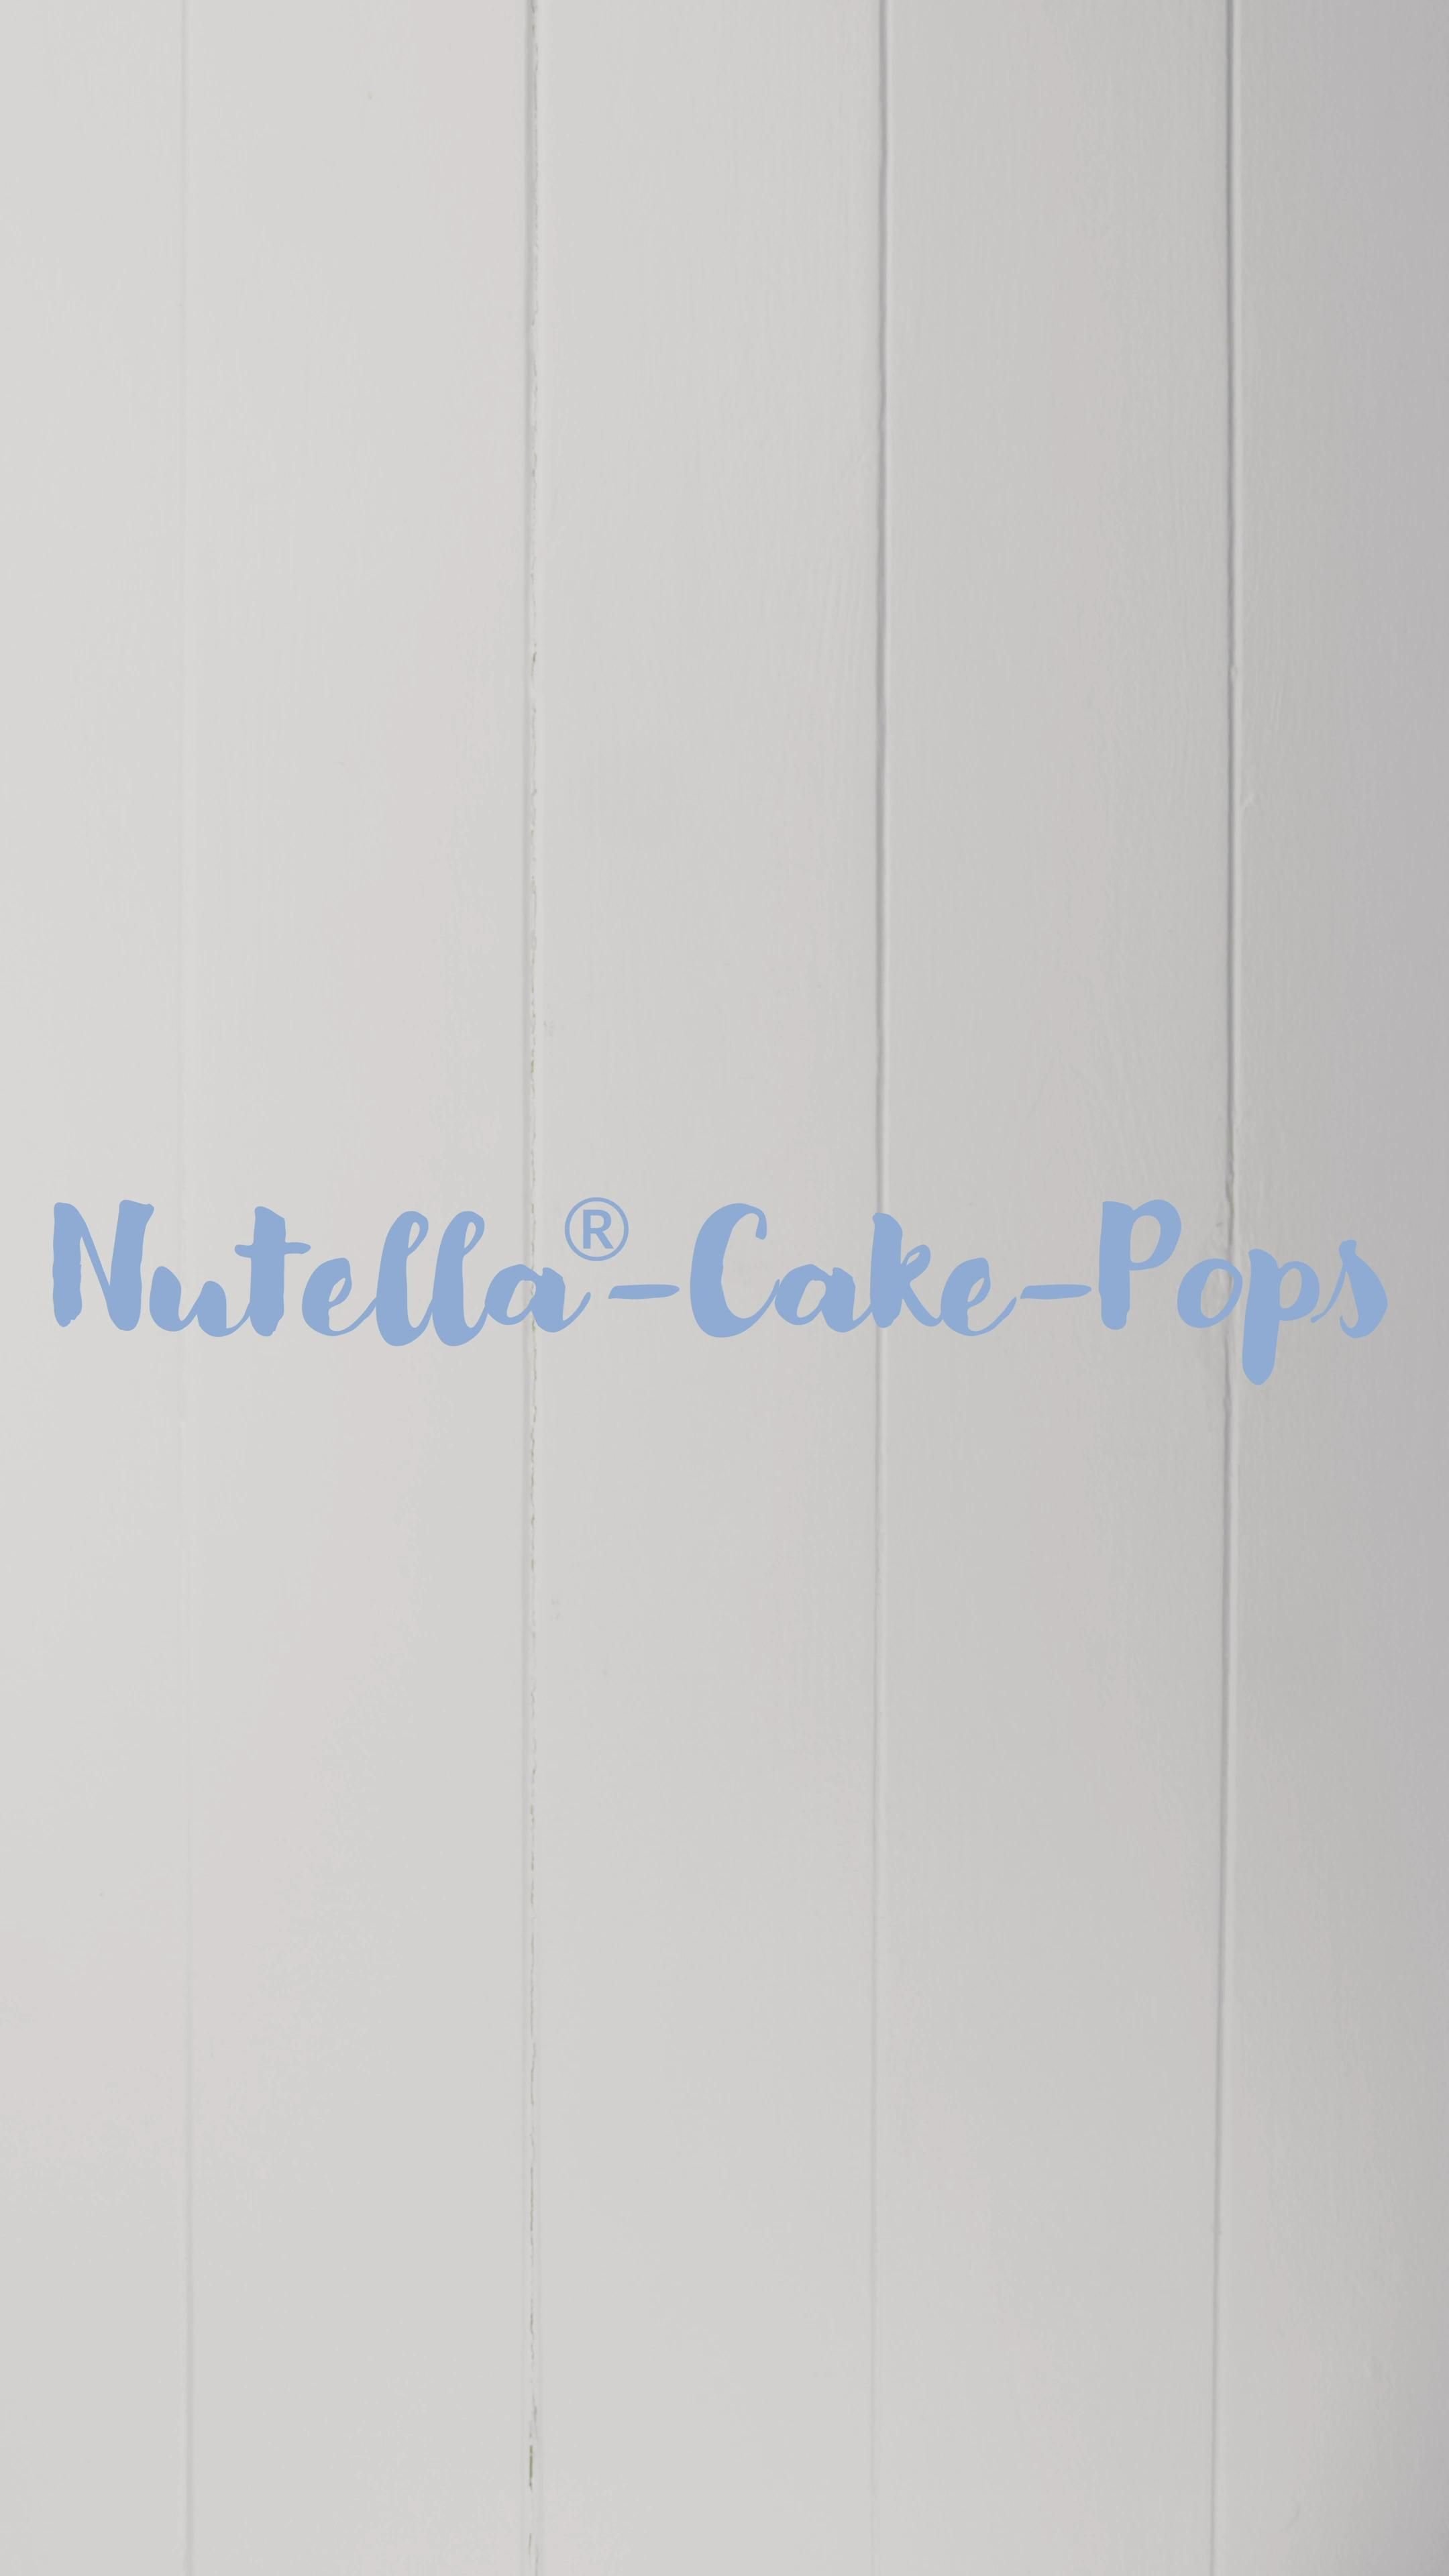 Photo of Nutella®-Cake-Pops